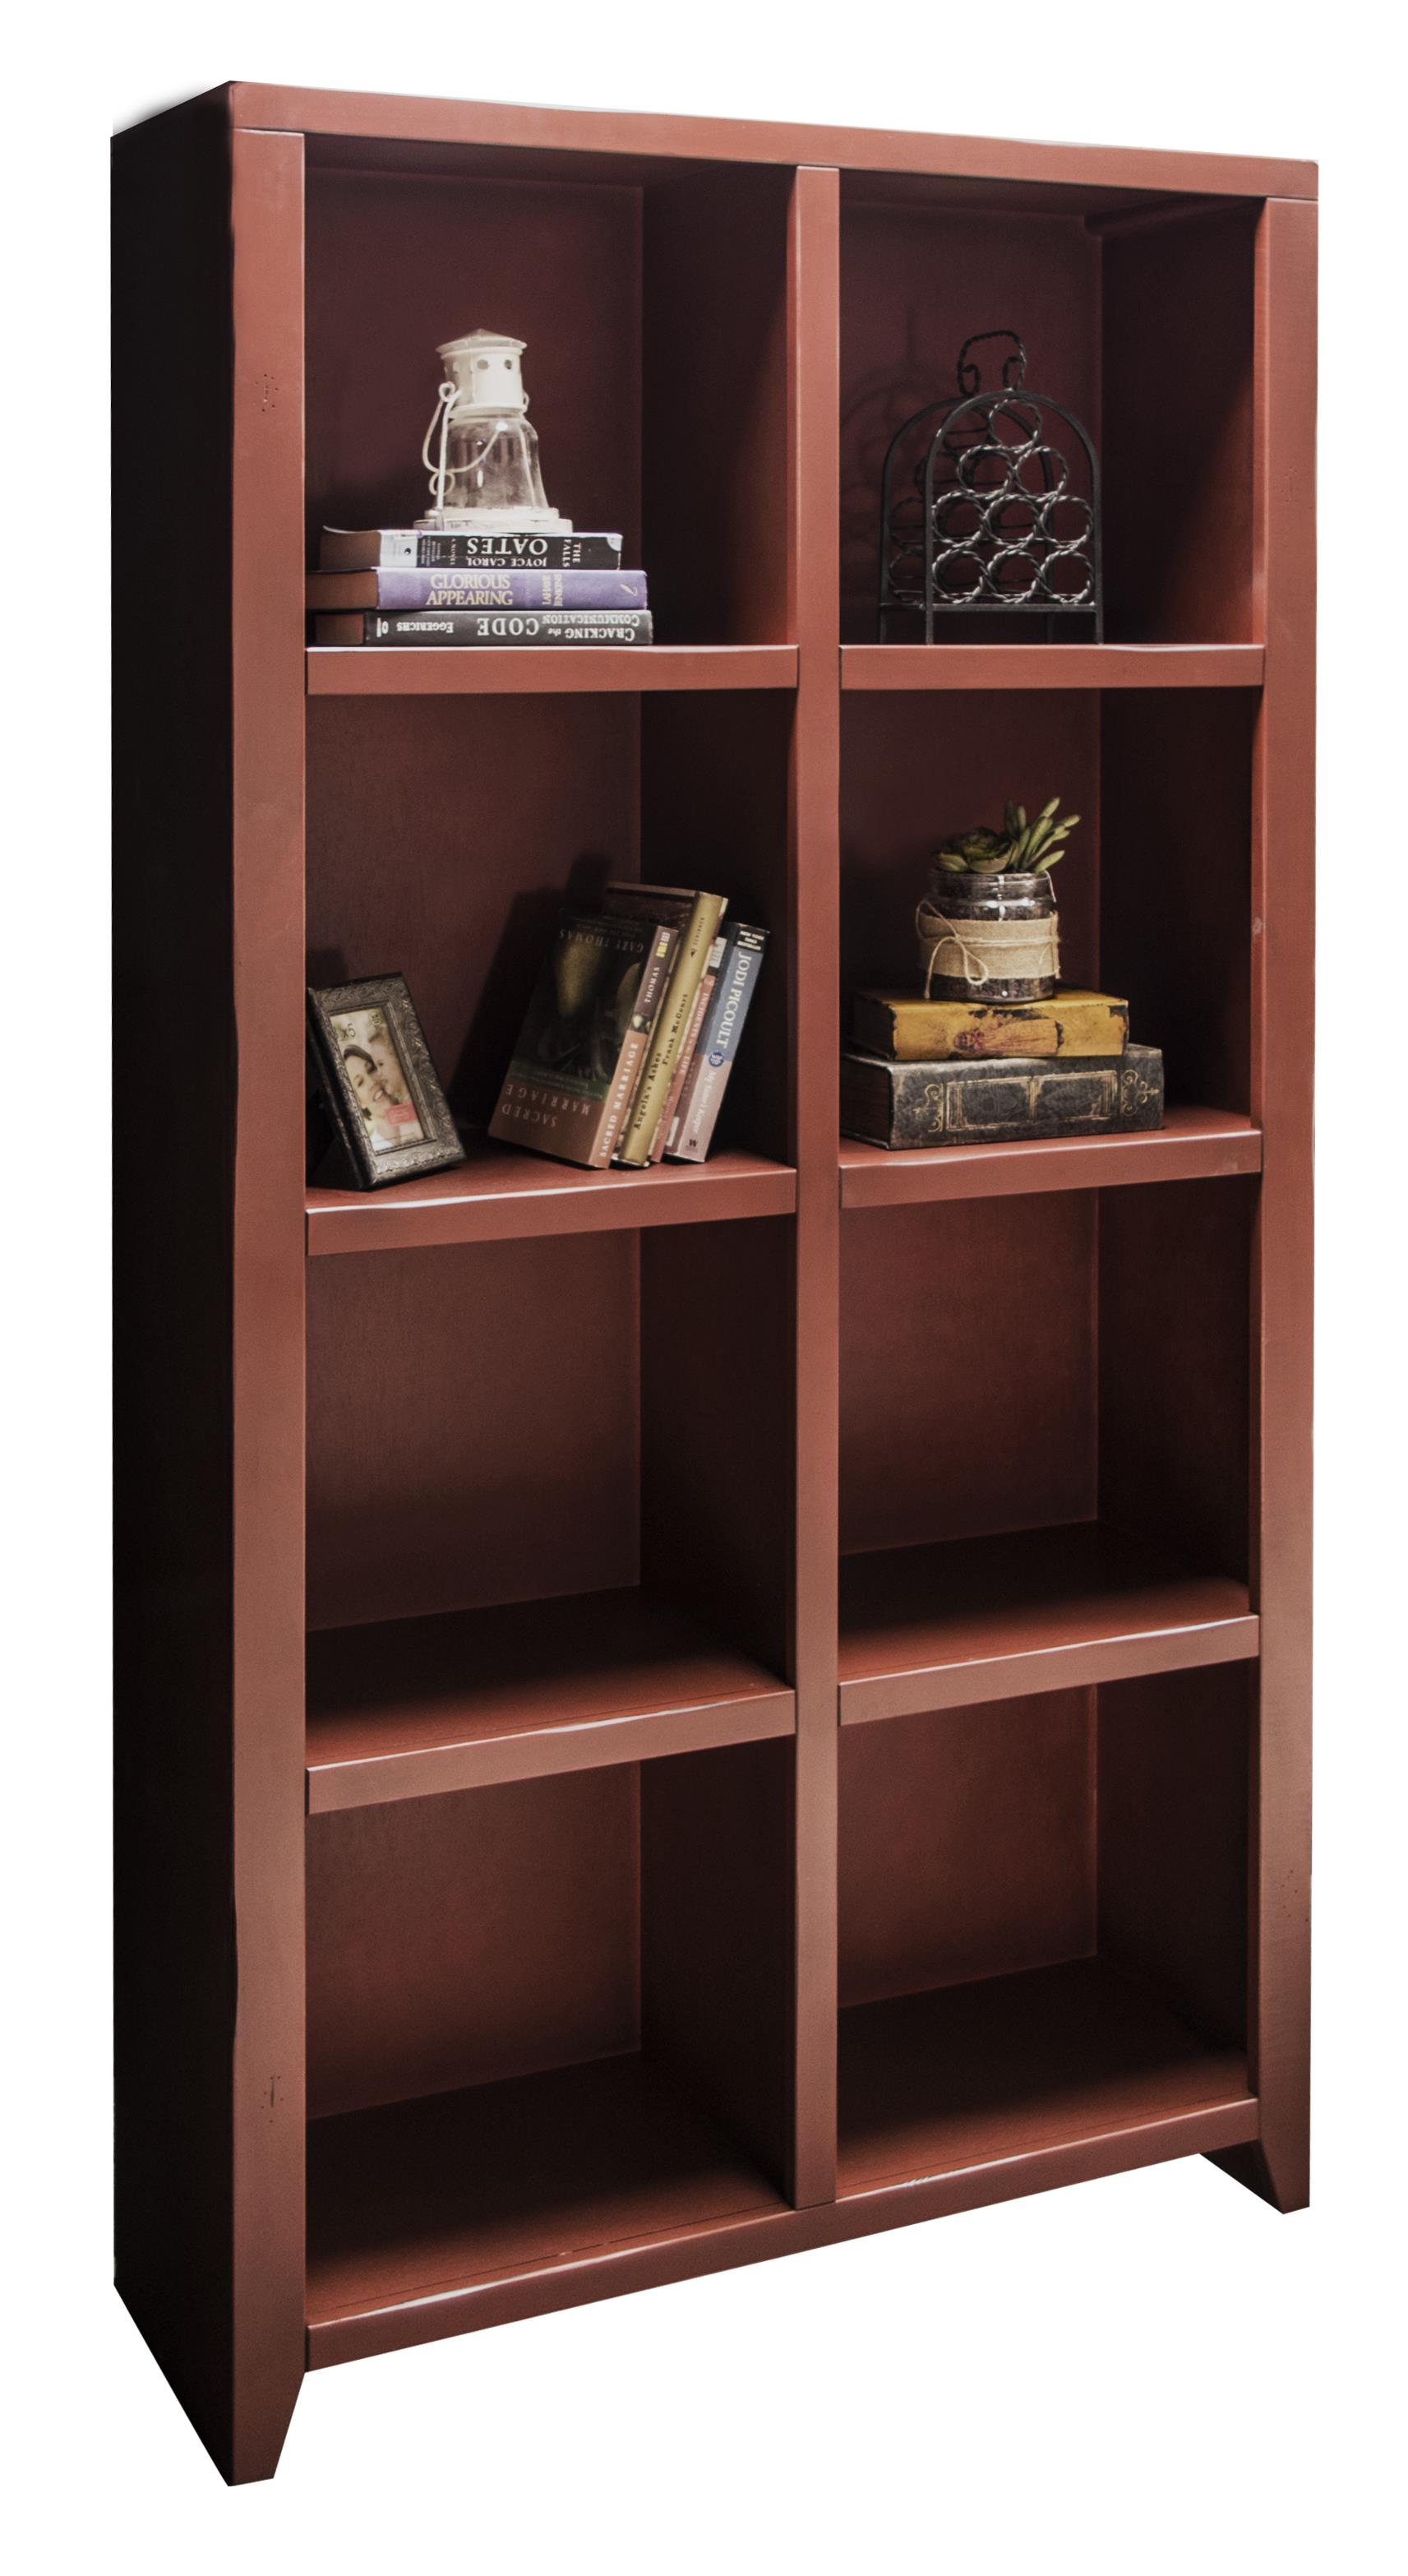 Legends Furniture Calistoga Collection Calistoga 8-Cubicle Bookcase - Item Number: CA6302-RRD